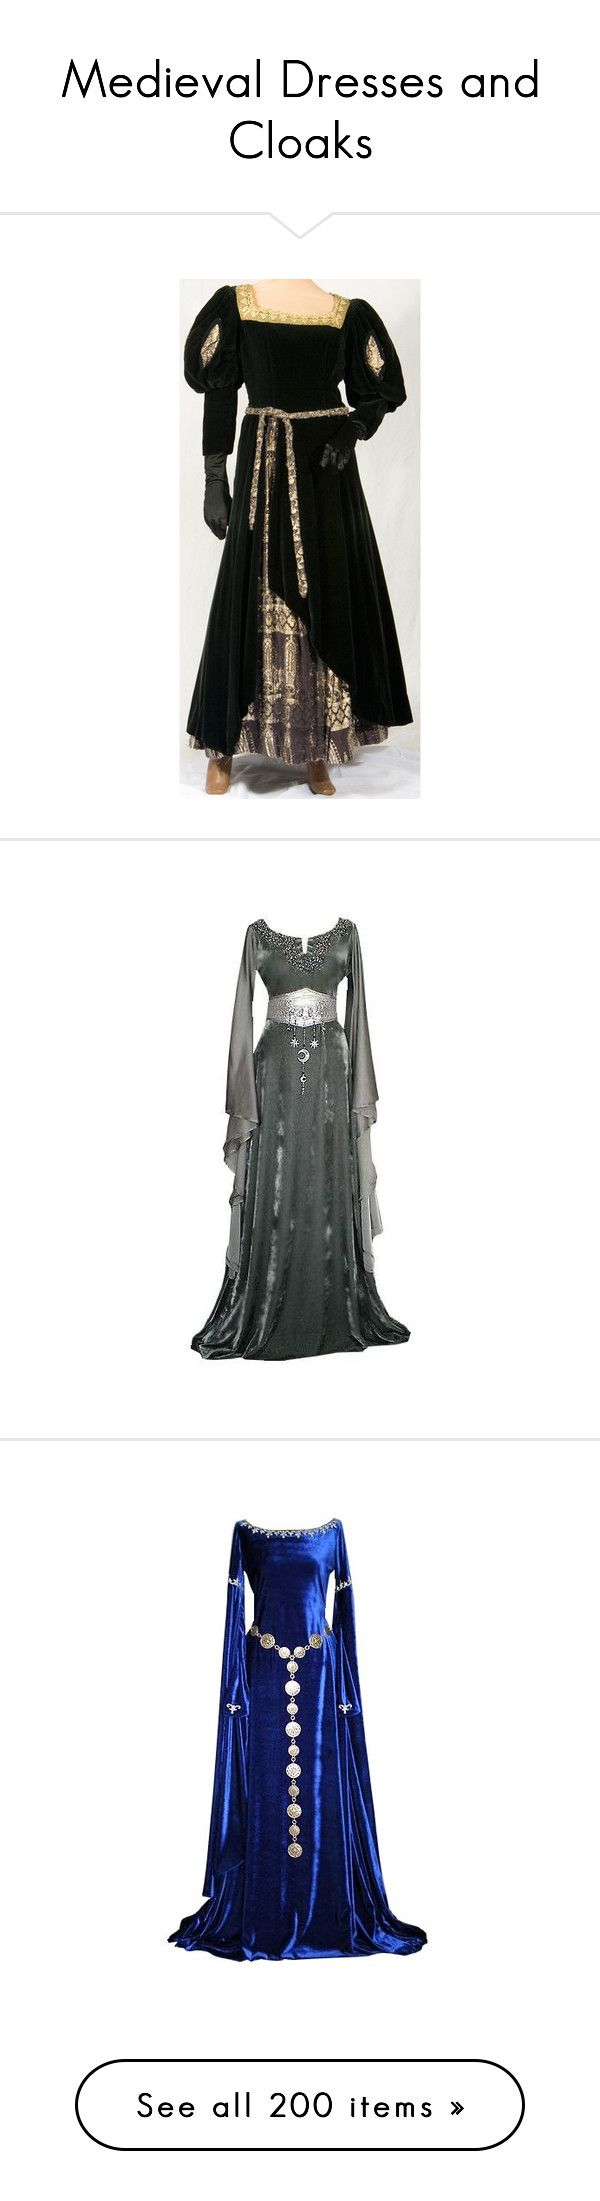 """Medieval Dresses and Cloaks"" by just-call-me-chuck ❤ liked on Polyvore featuring costumes, dresses, medieval, renaissance, princess costume, womens plus costumes, renaissance costumes, queen costume, maid marian costume and gowns"